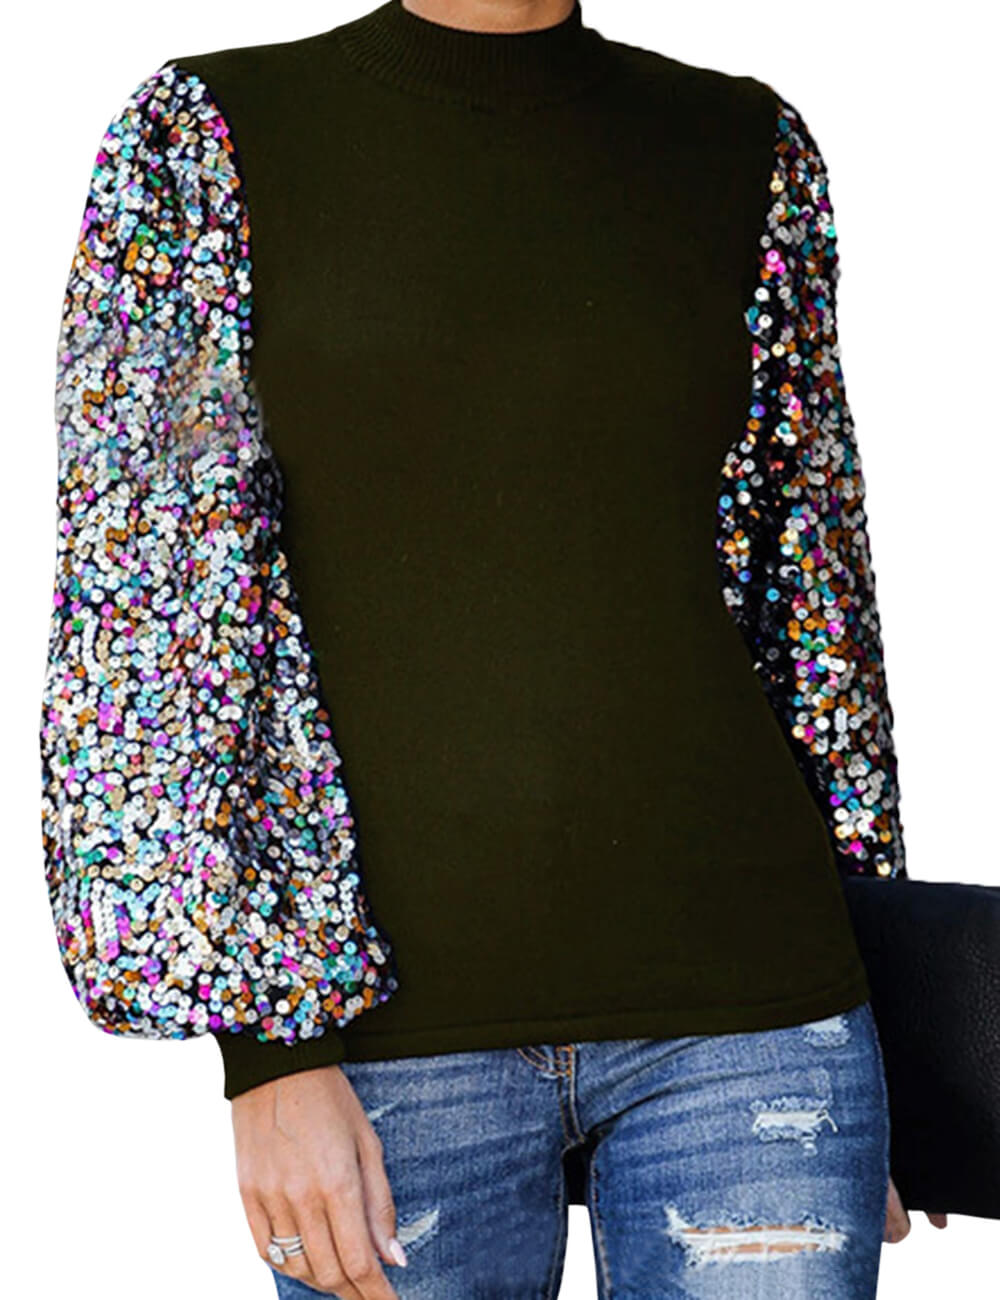 Women's Long Lantern Sleeve High Neck Sequined Blouse Top Puff Sleeve Patchwork Color Block Shiny Sweatshirts